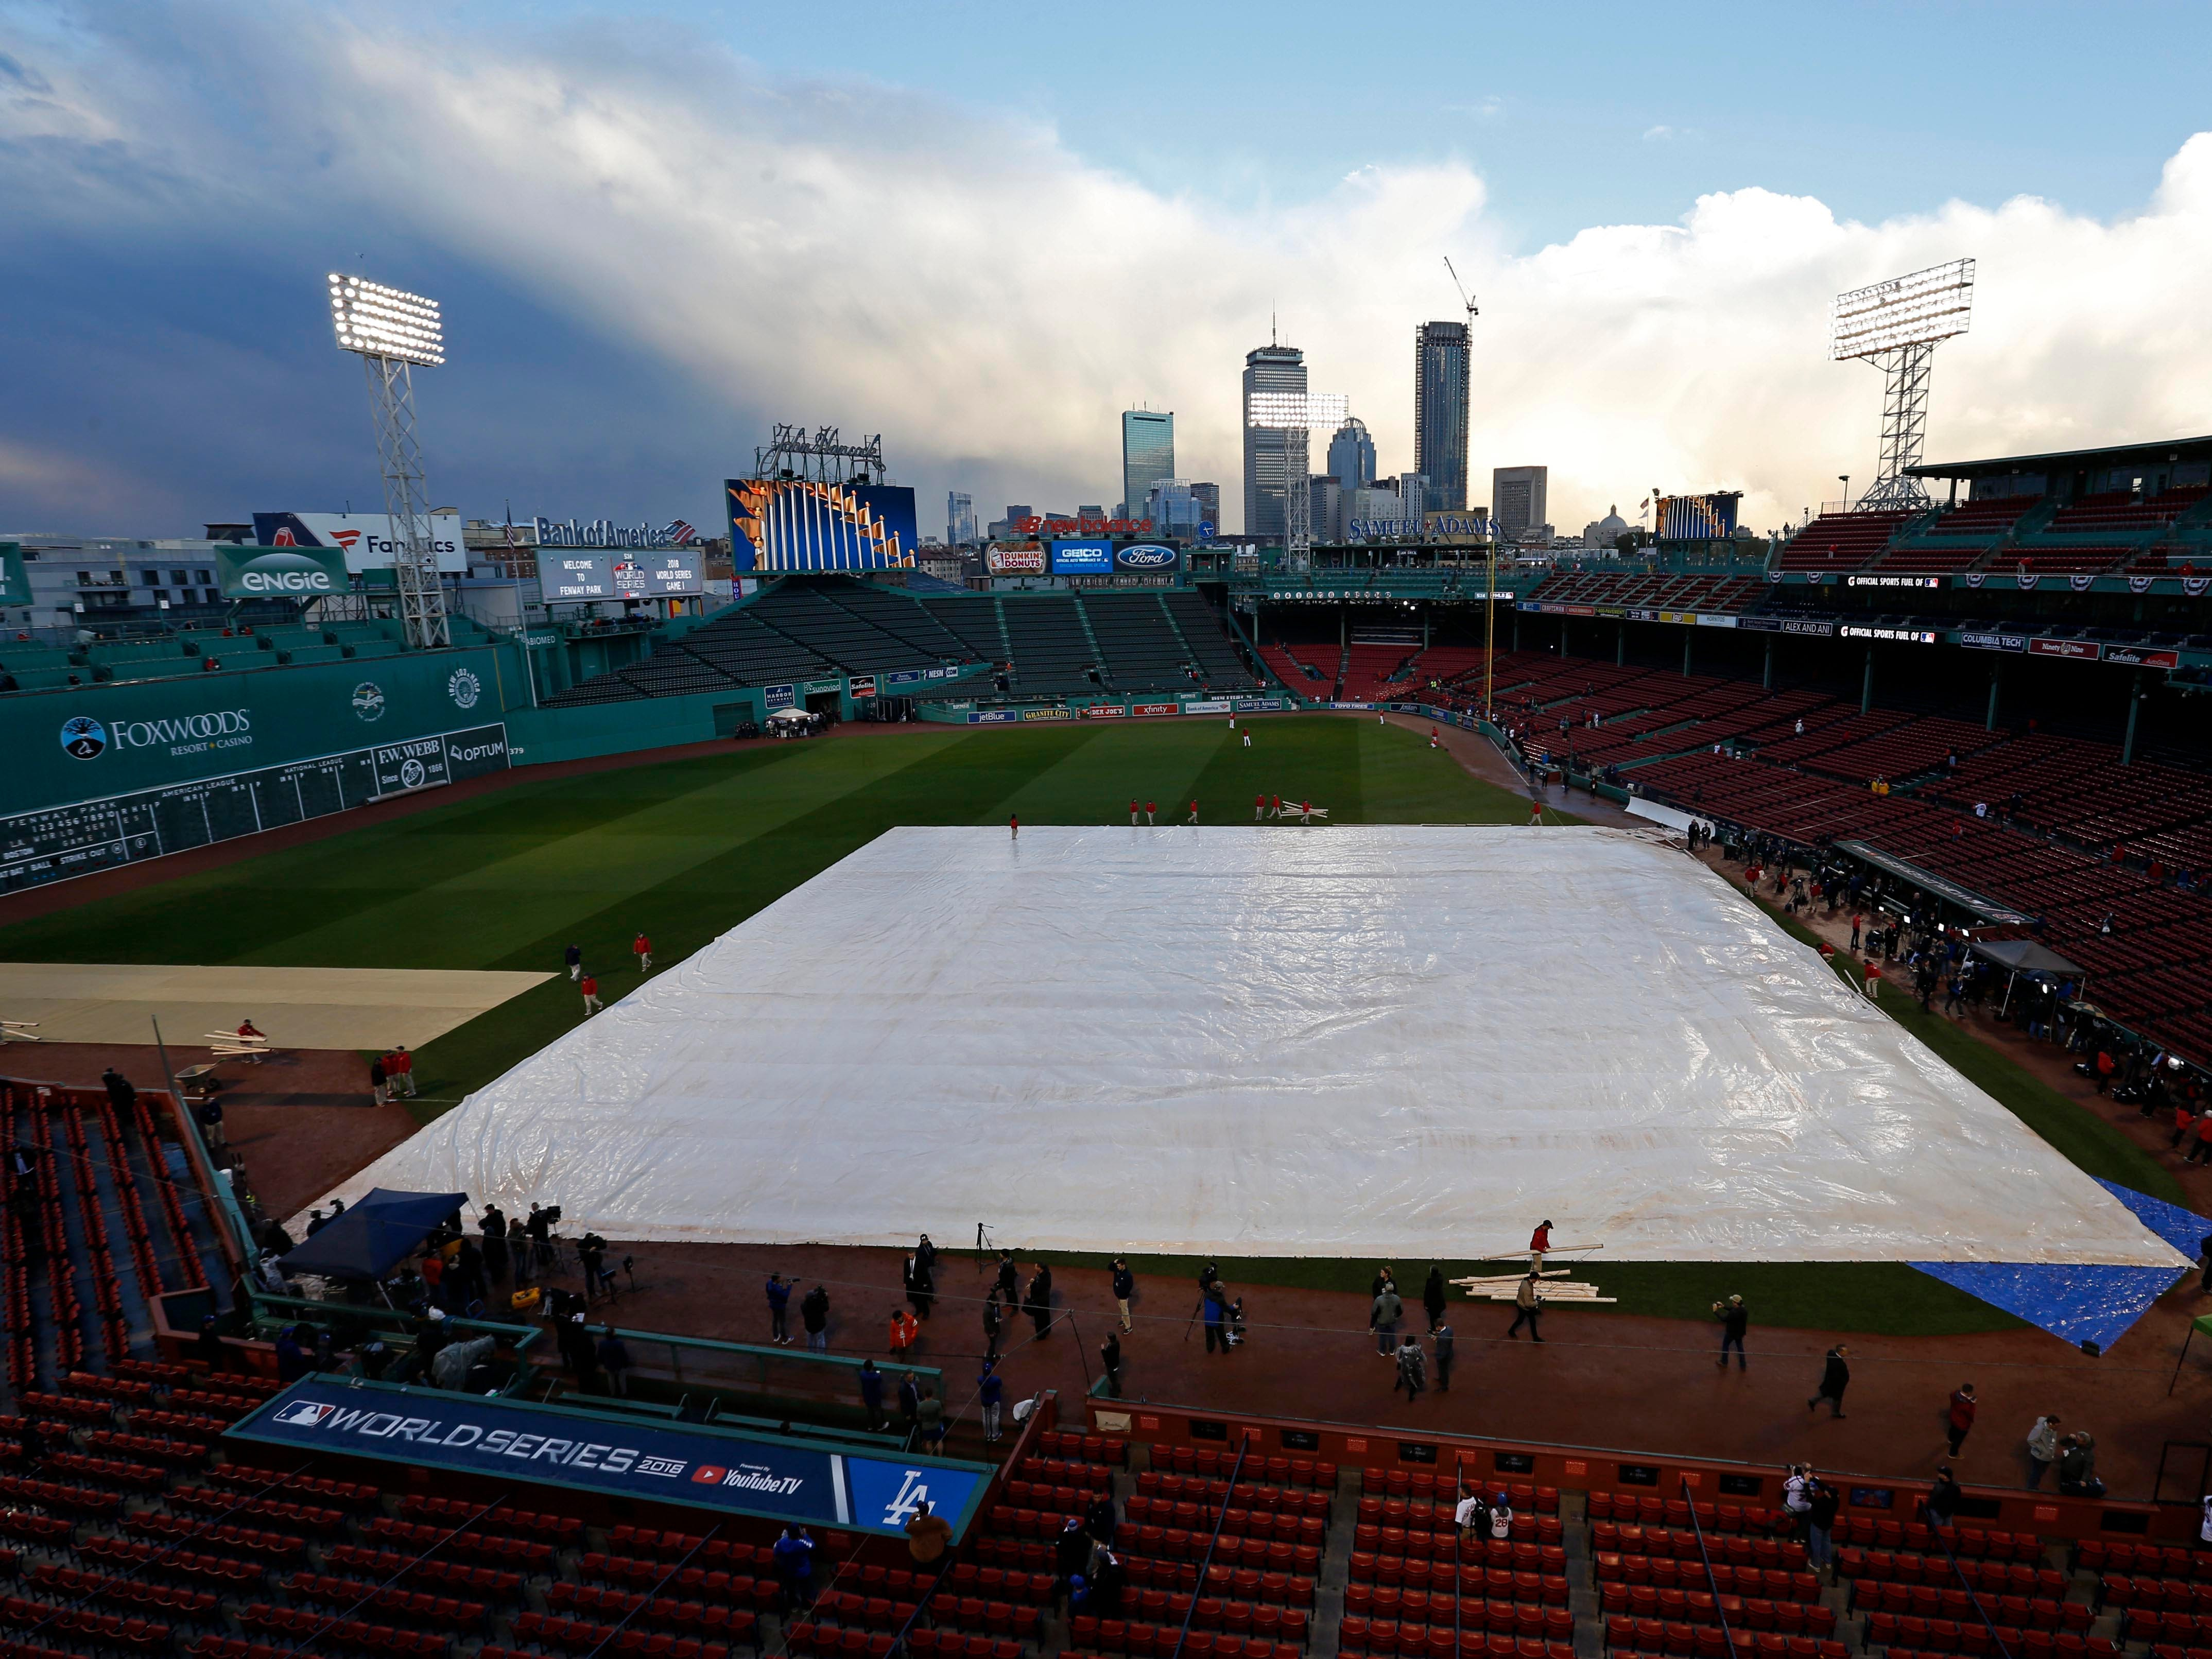 Game 1 at Fenway Park: The tarp sits on the field hours before first pitch.